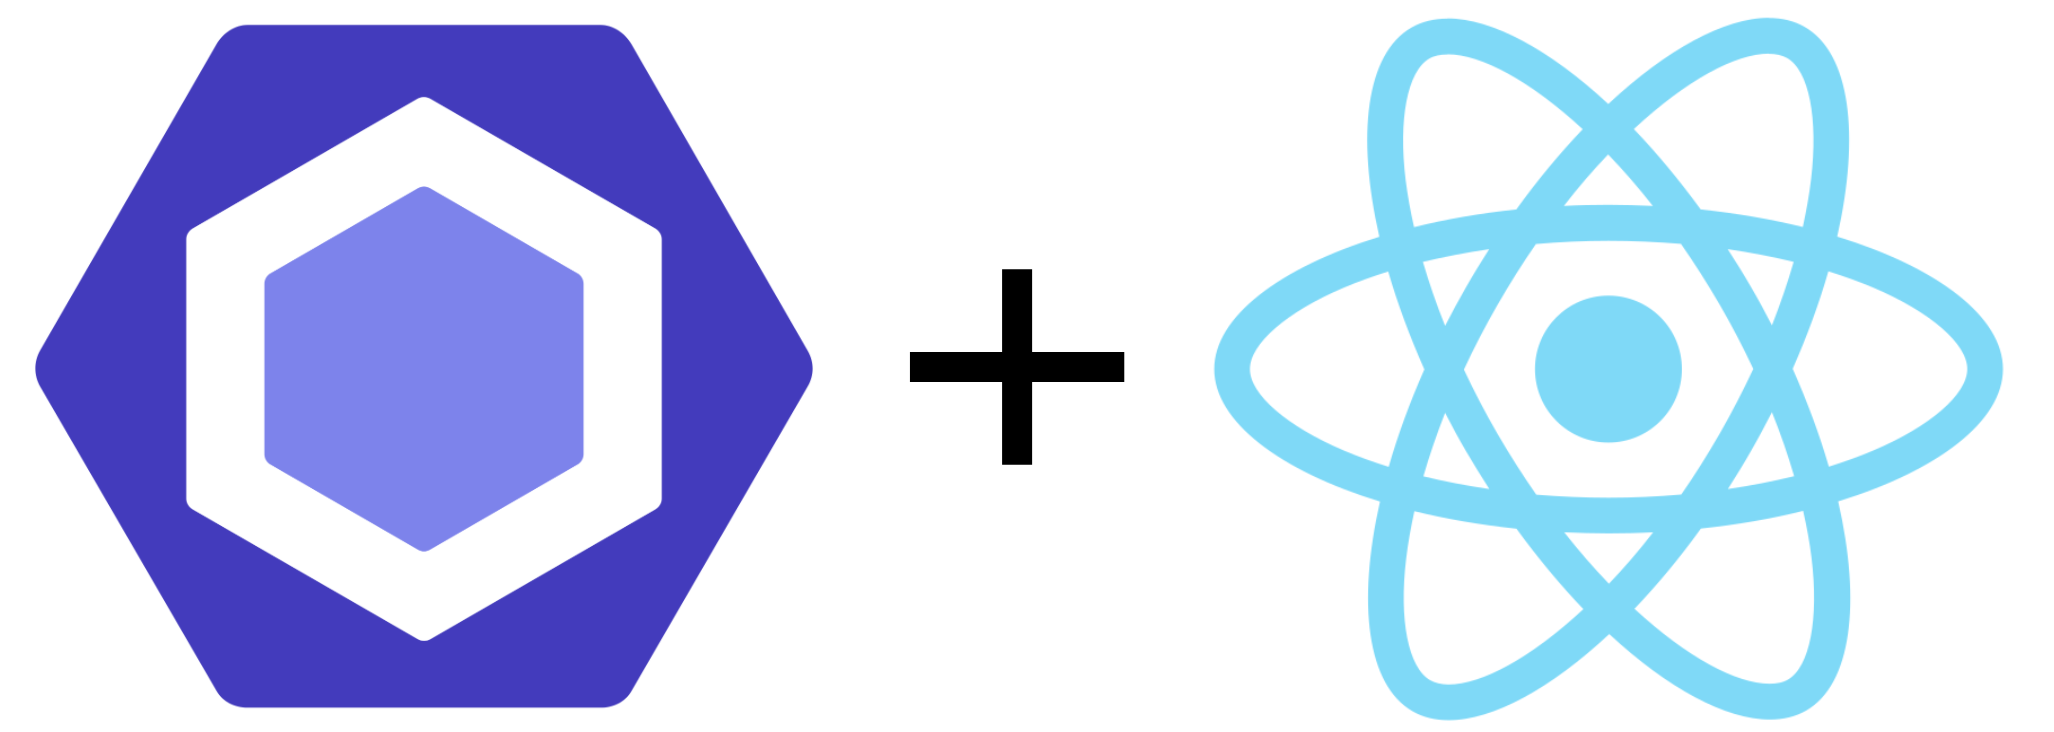 install react without npm